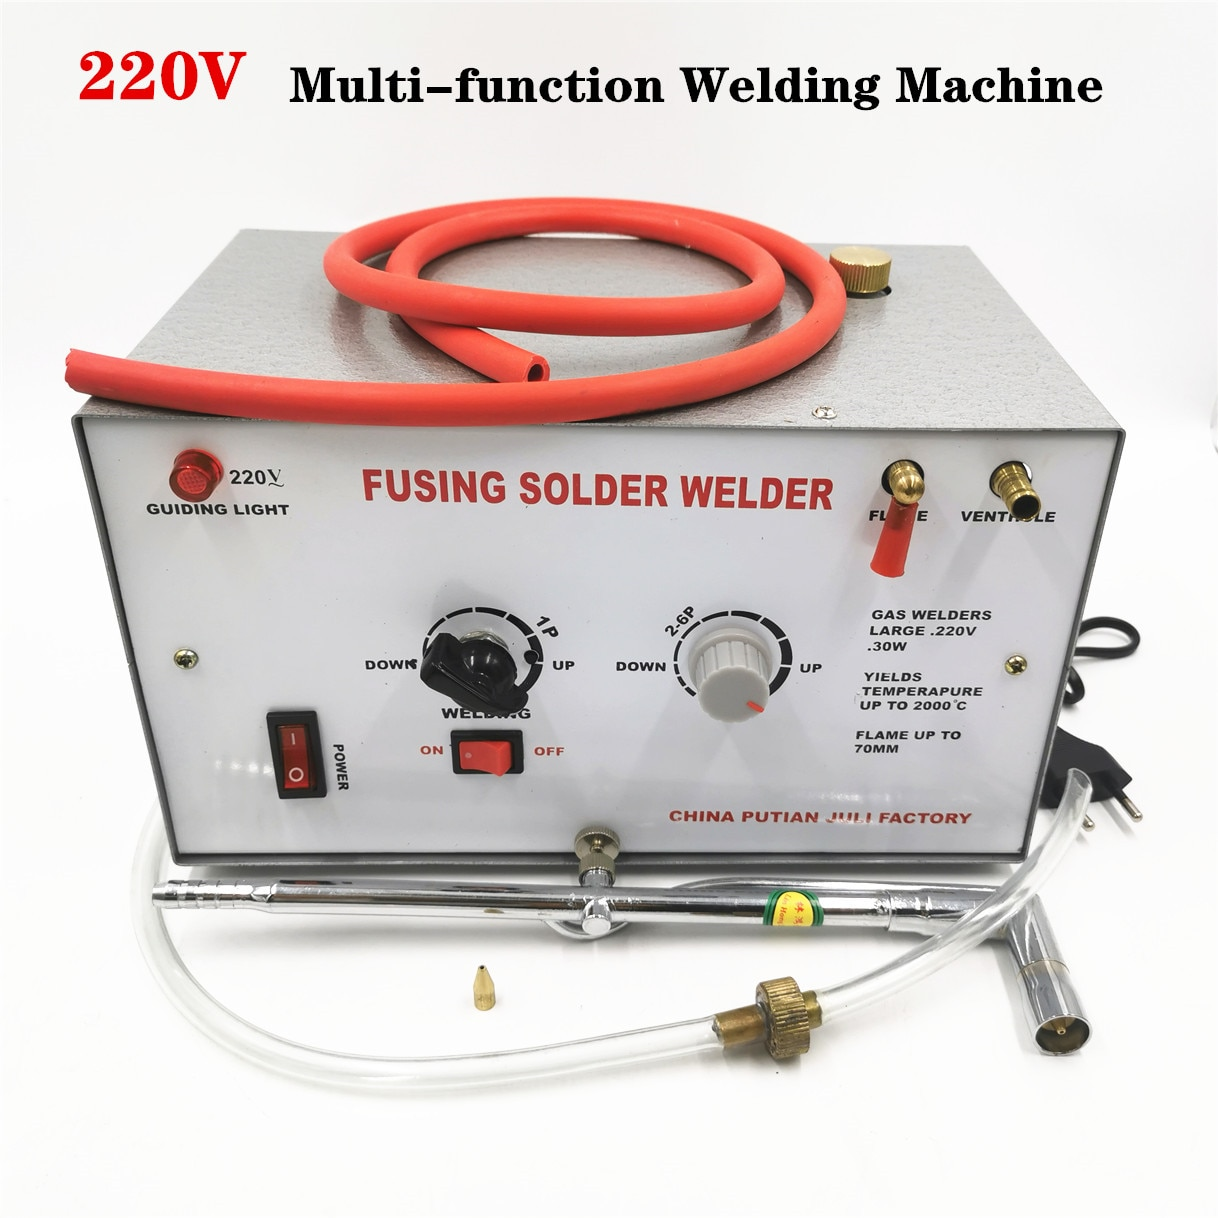 30W 220V Welding  Melting Machine Gold Silver Welding Melting / Soldering Maximum Temperature Up To 2000 Jewelry Welding Tools